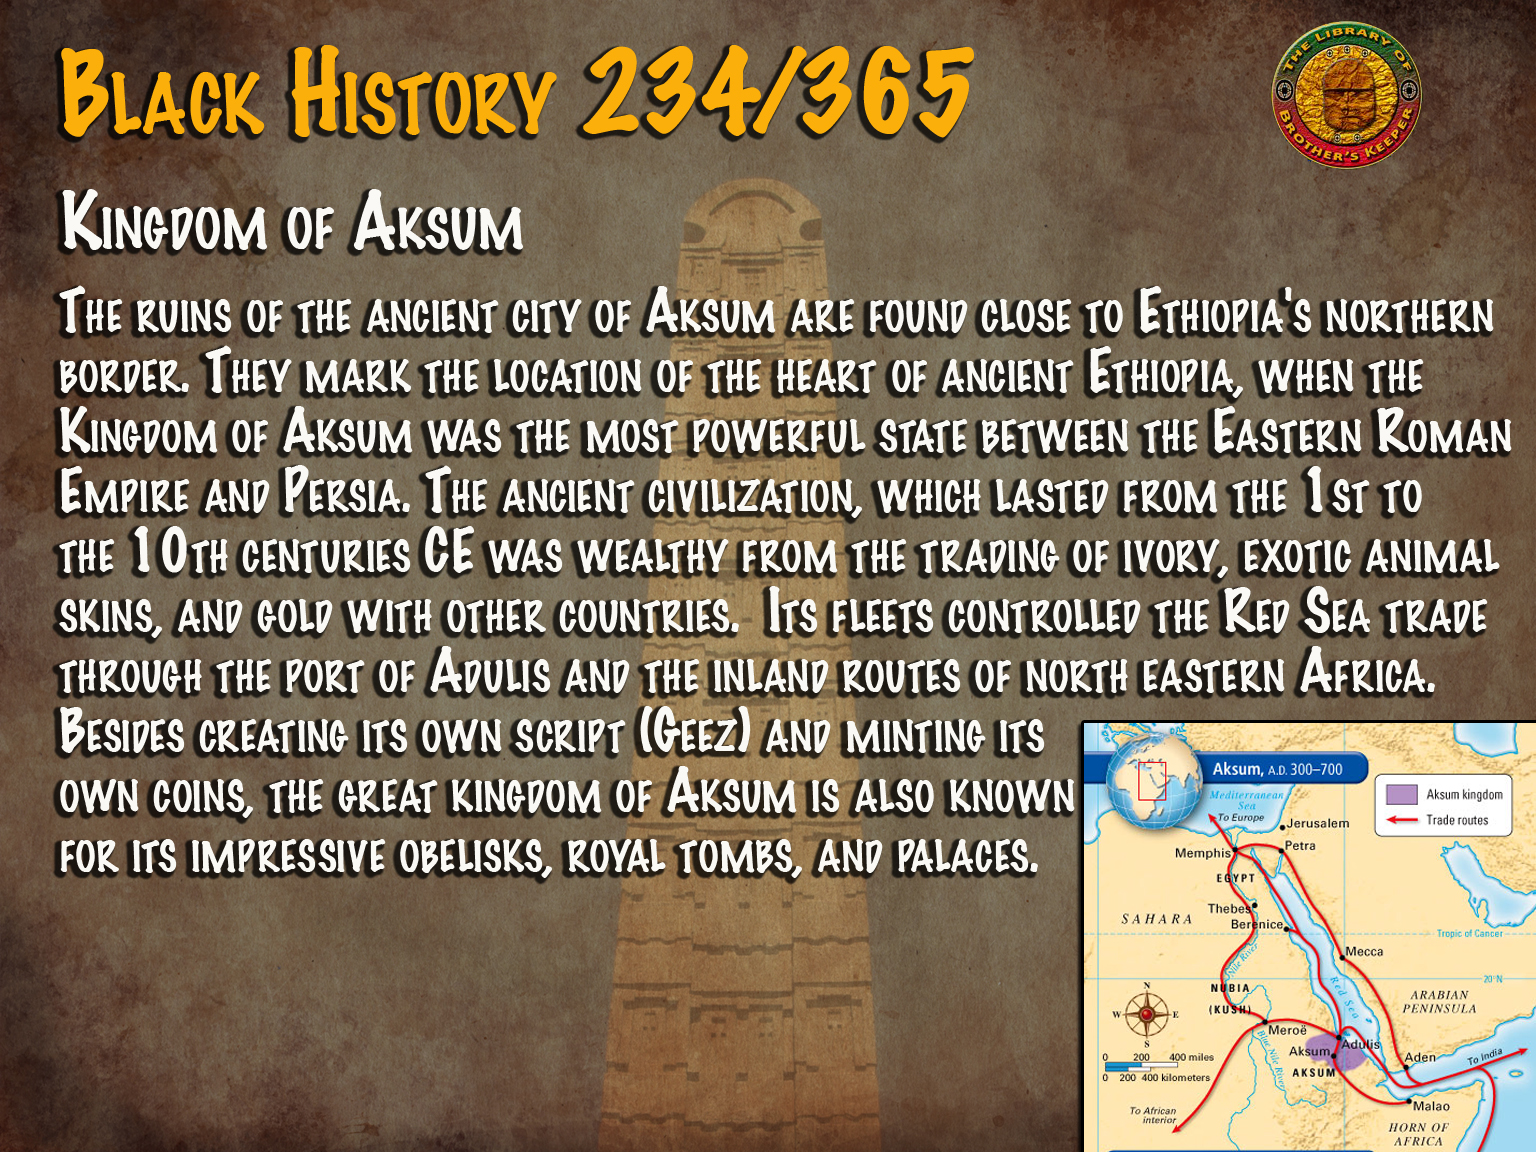 Kingdom of Askum